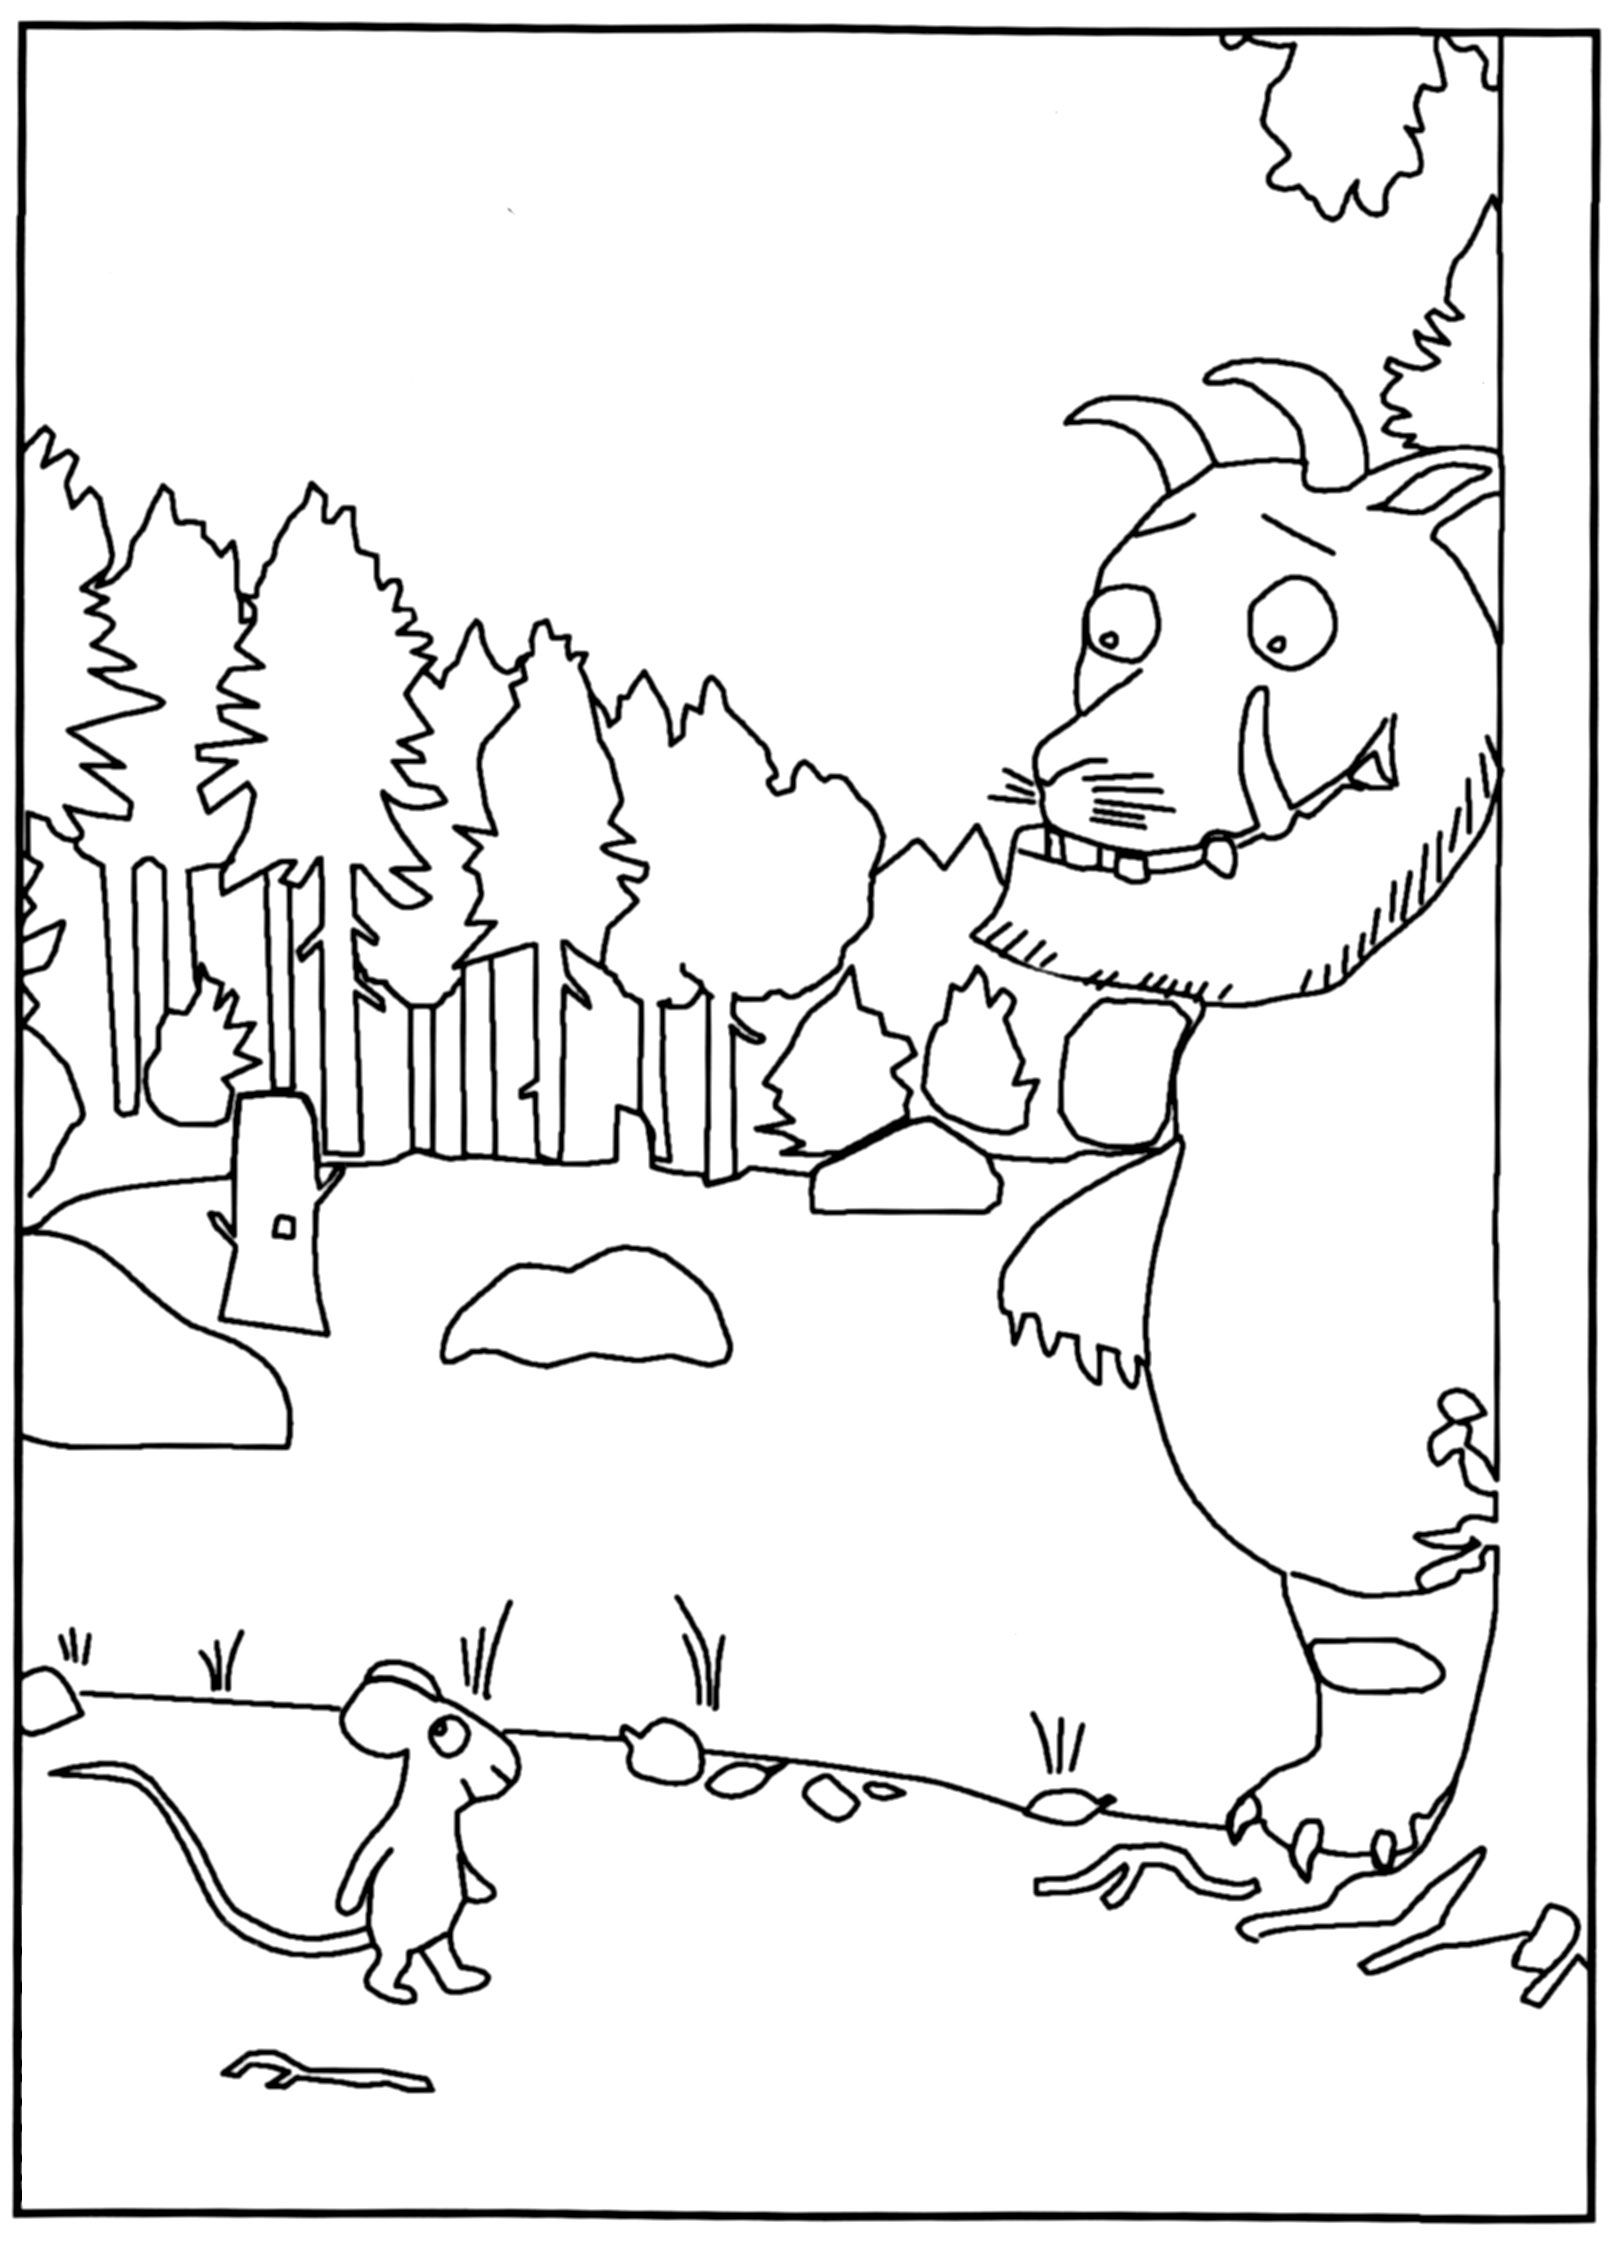 Gruffalo Coloring Pages At Getdrawings Free Download